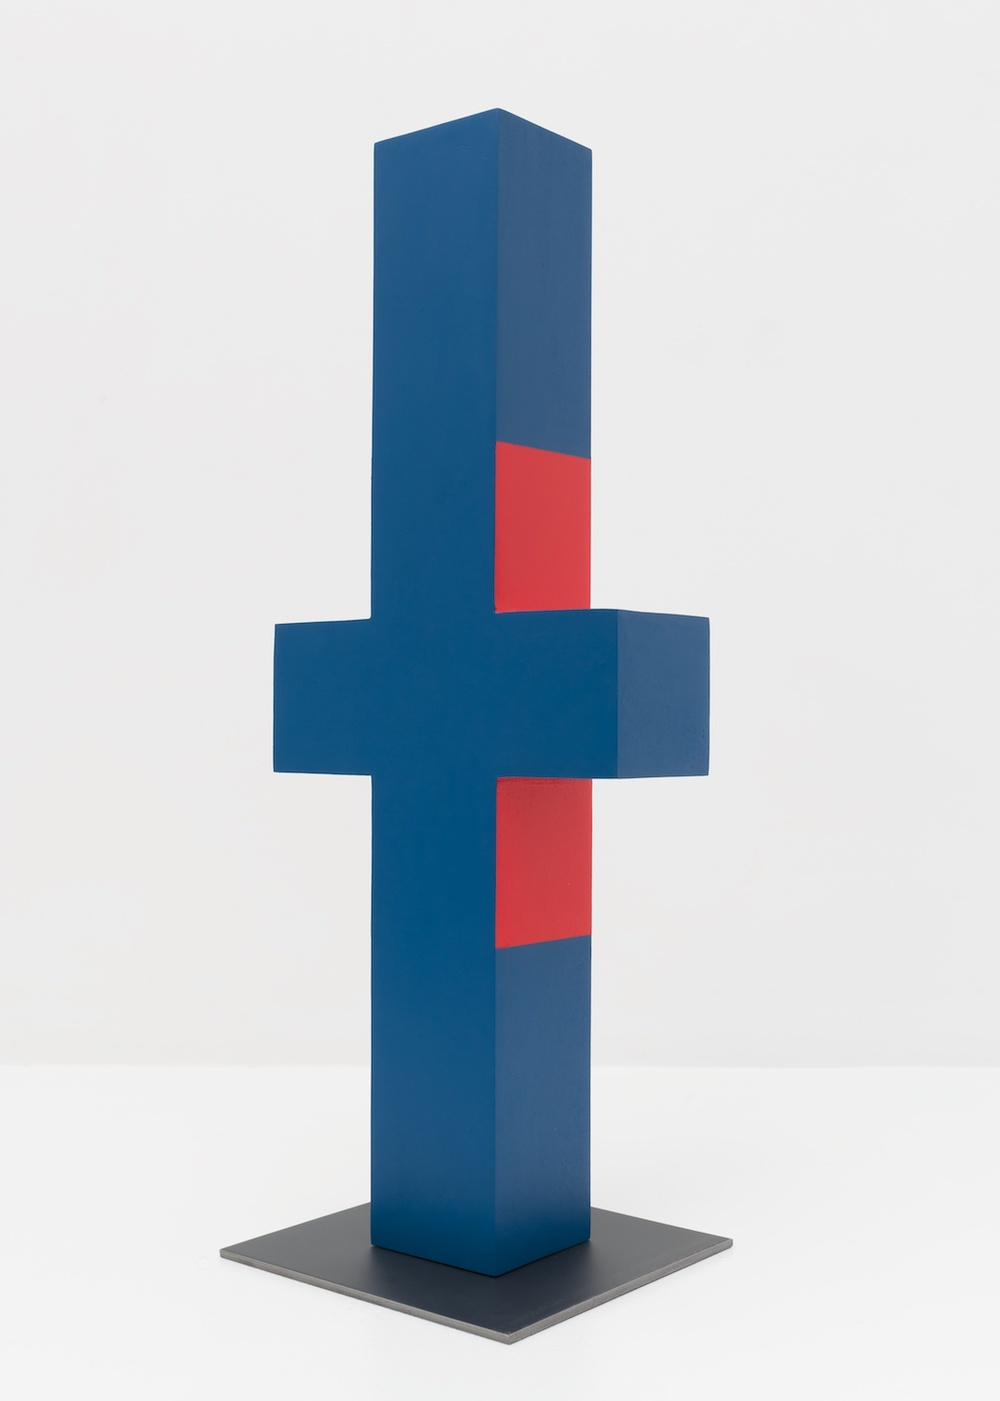 Lisa Williamson  Untitled  2015 Acrylic on wood, steel base 23 ½h x 9 ½w x 3 ½d in LW147